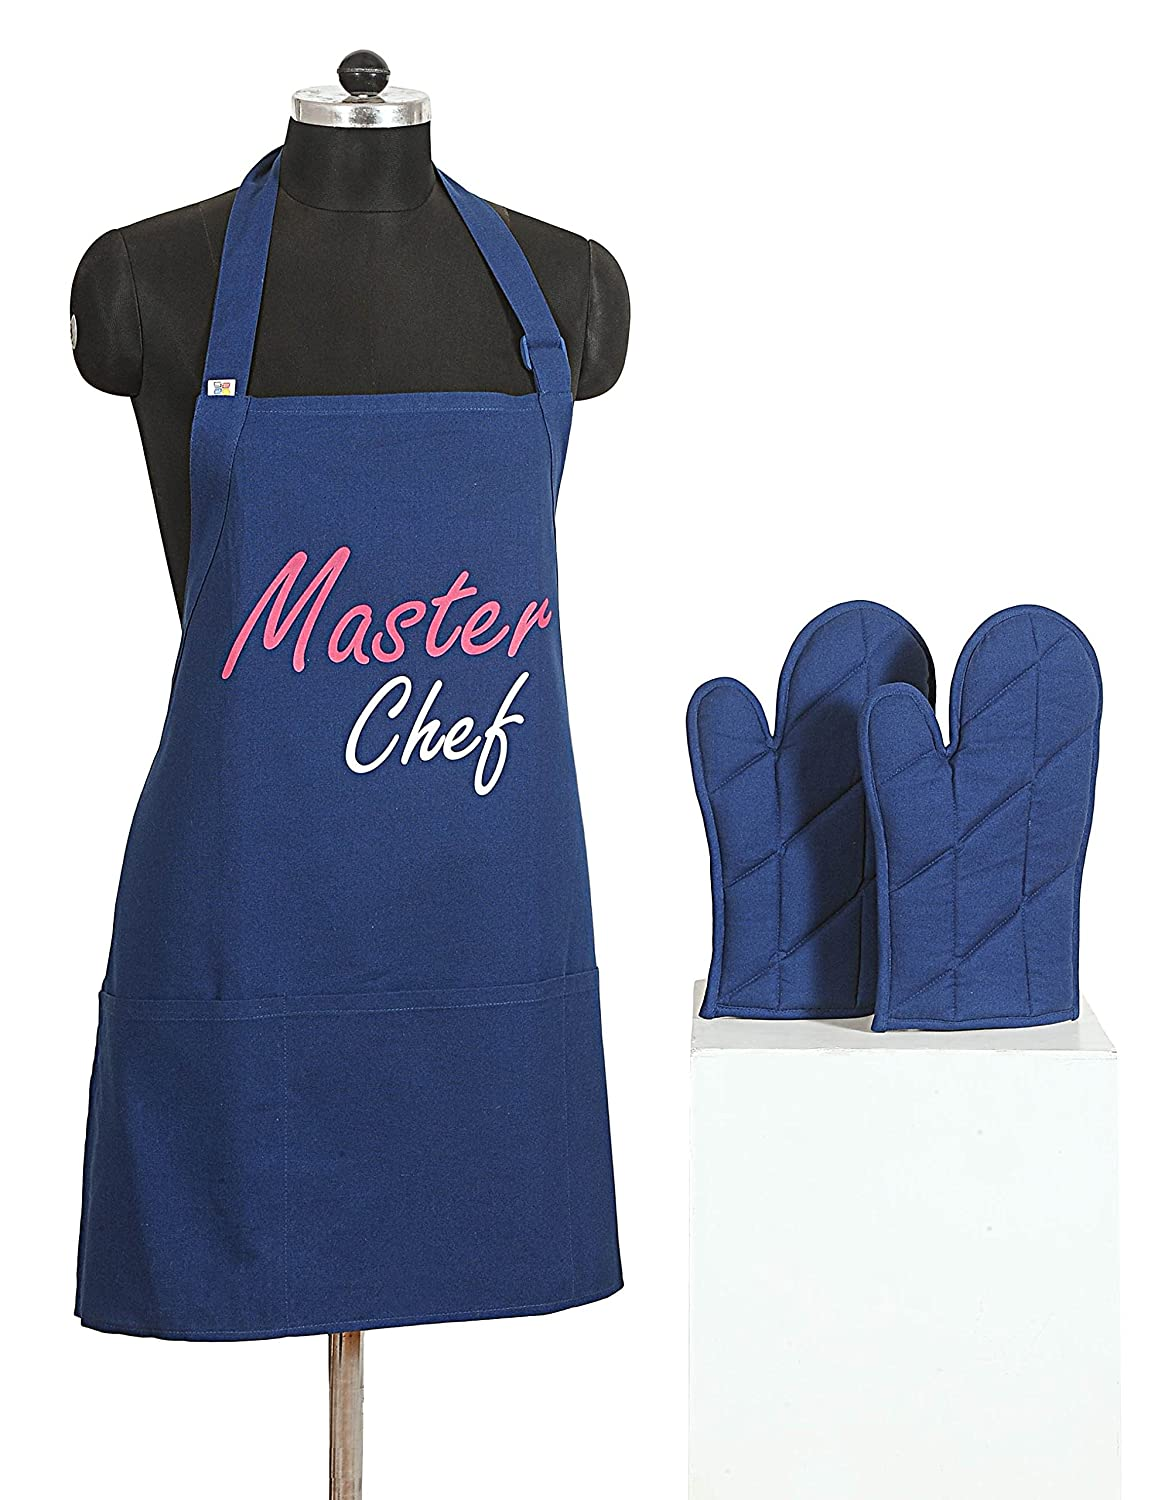 Graphic Screen Print Apron & Oven Mitt Set - 100% Cotton - Kitchen Gifts for Women OR Kitchen Gifts for Men